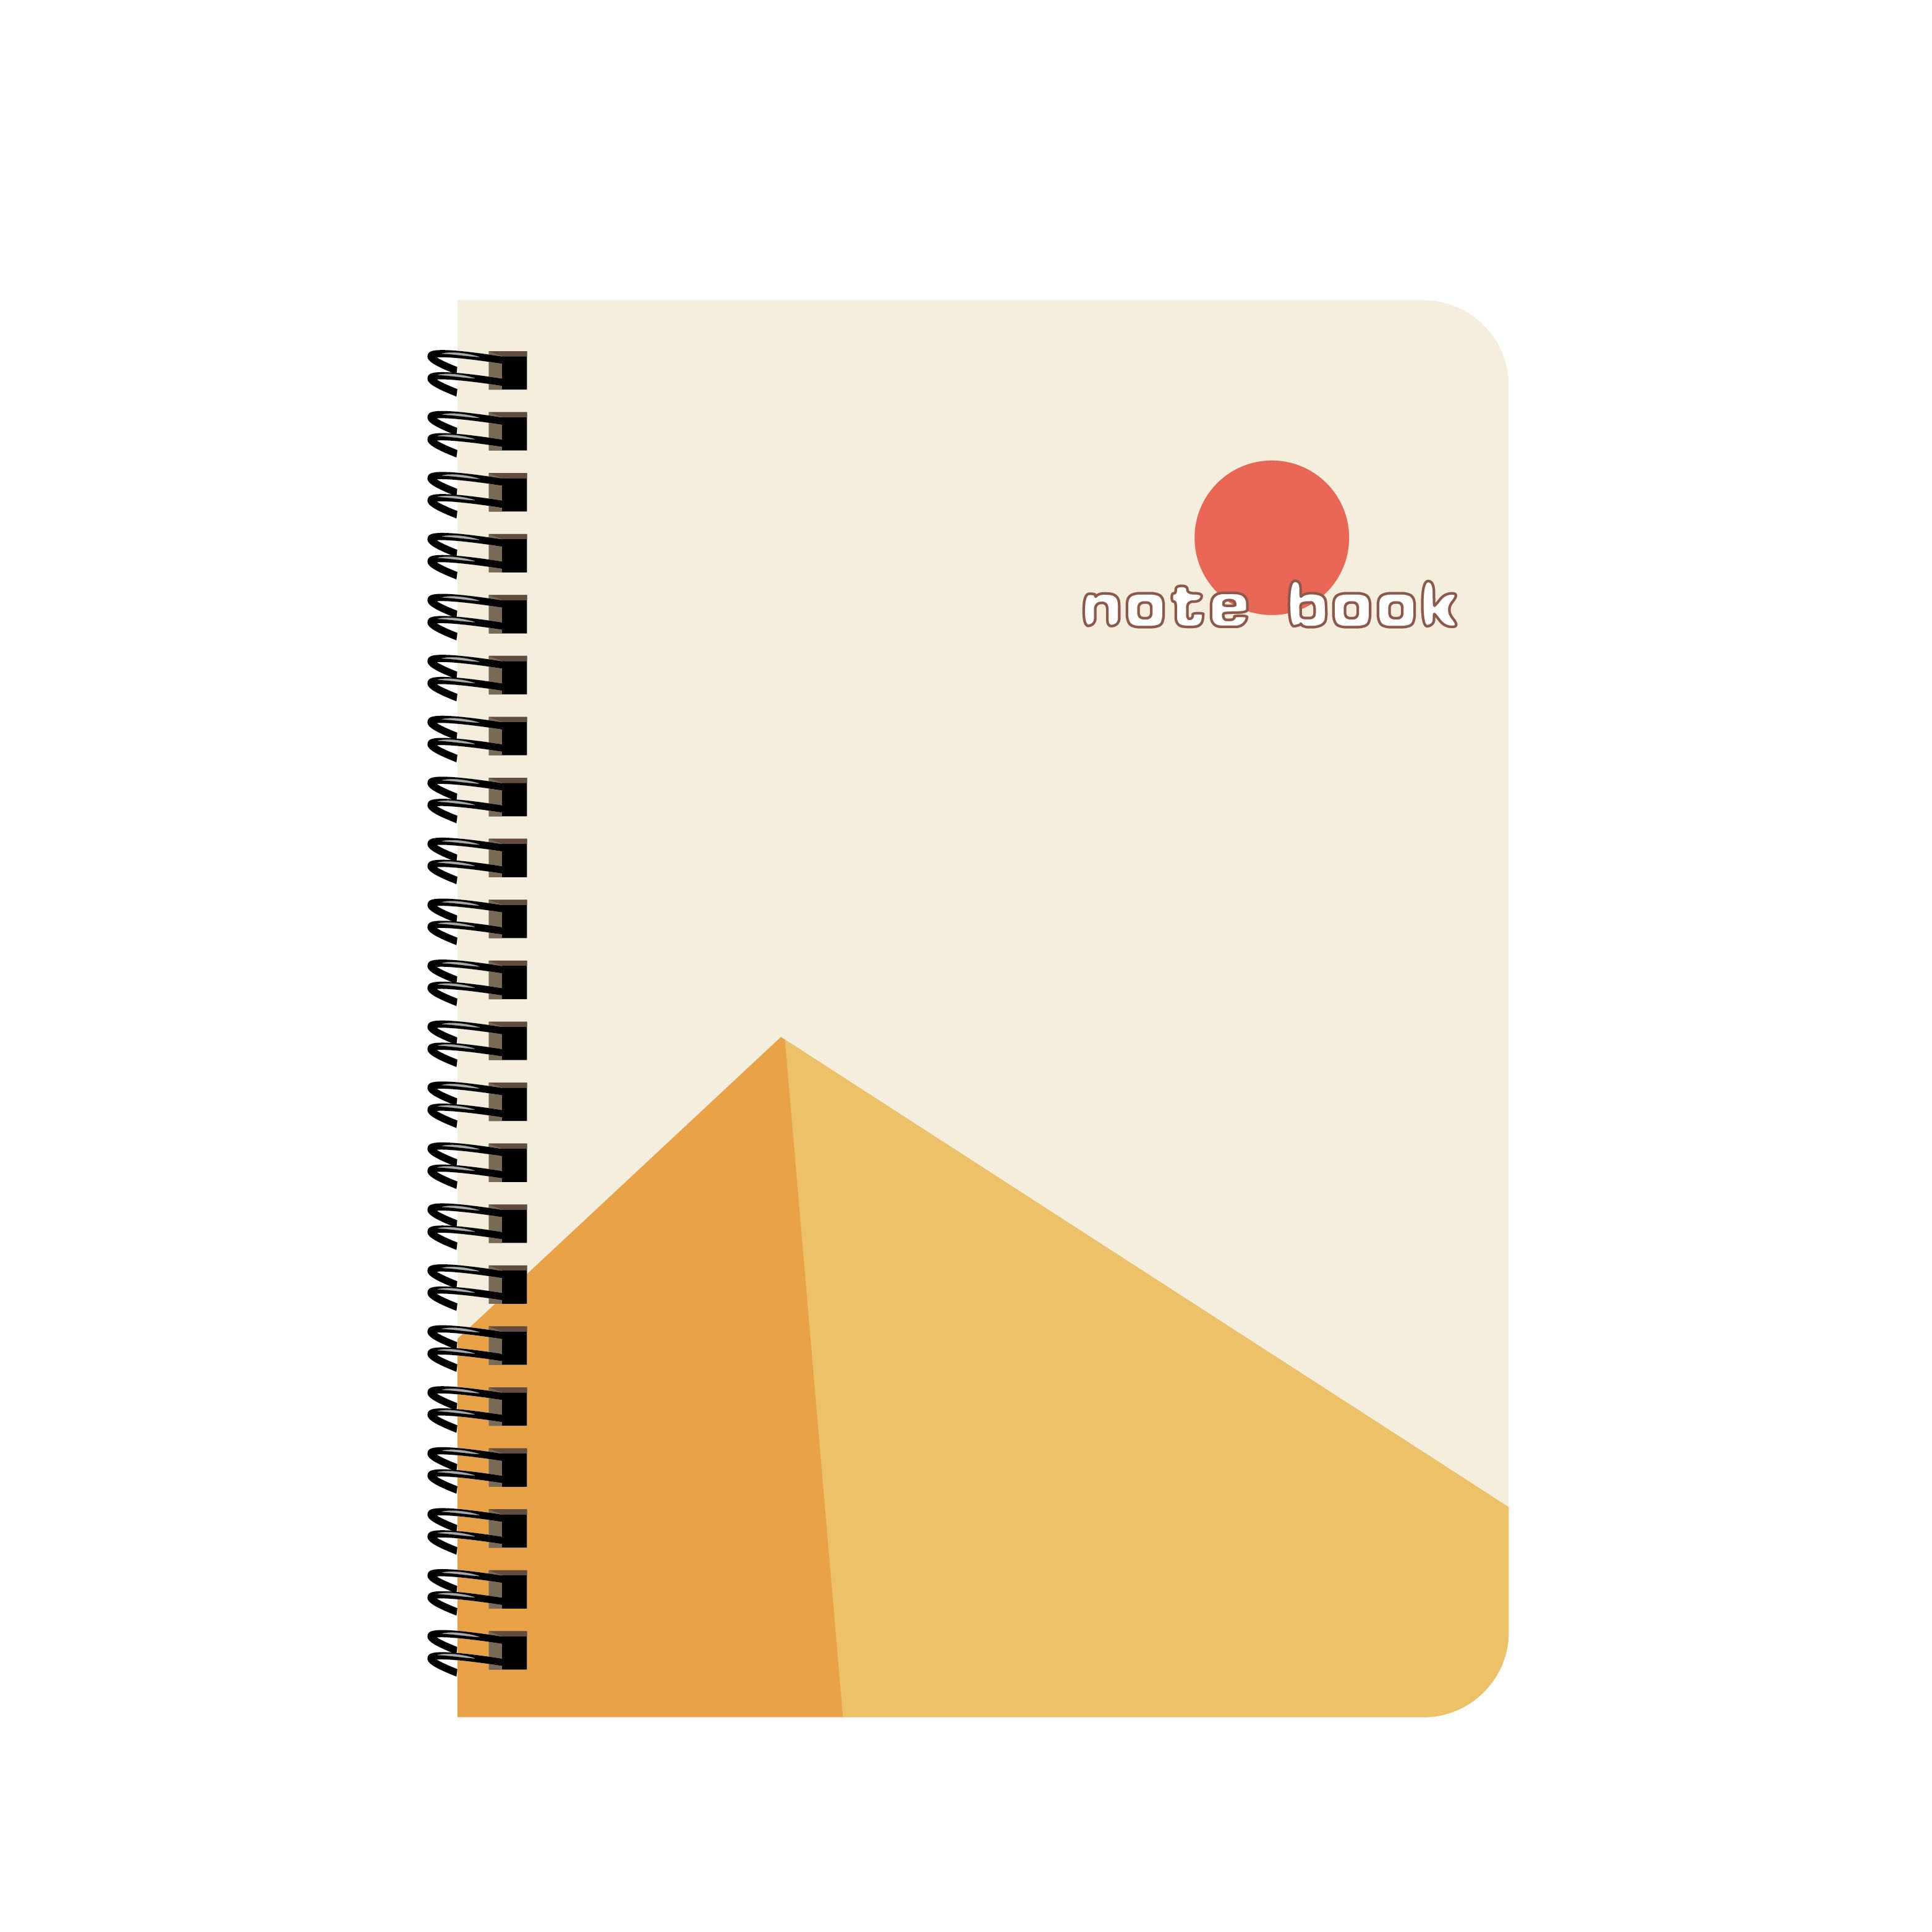 A4 A5 A6 Japanese-Style Minimalism Cover Wide Ruled Notebook With Black Spiral Binding